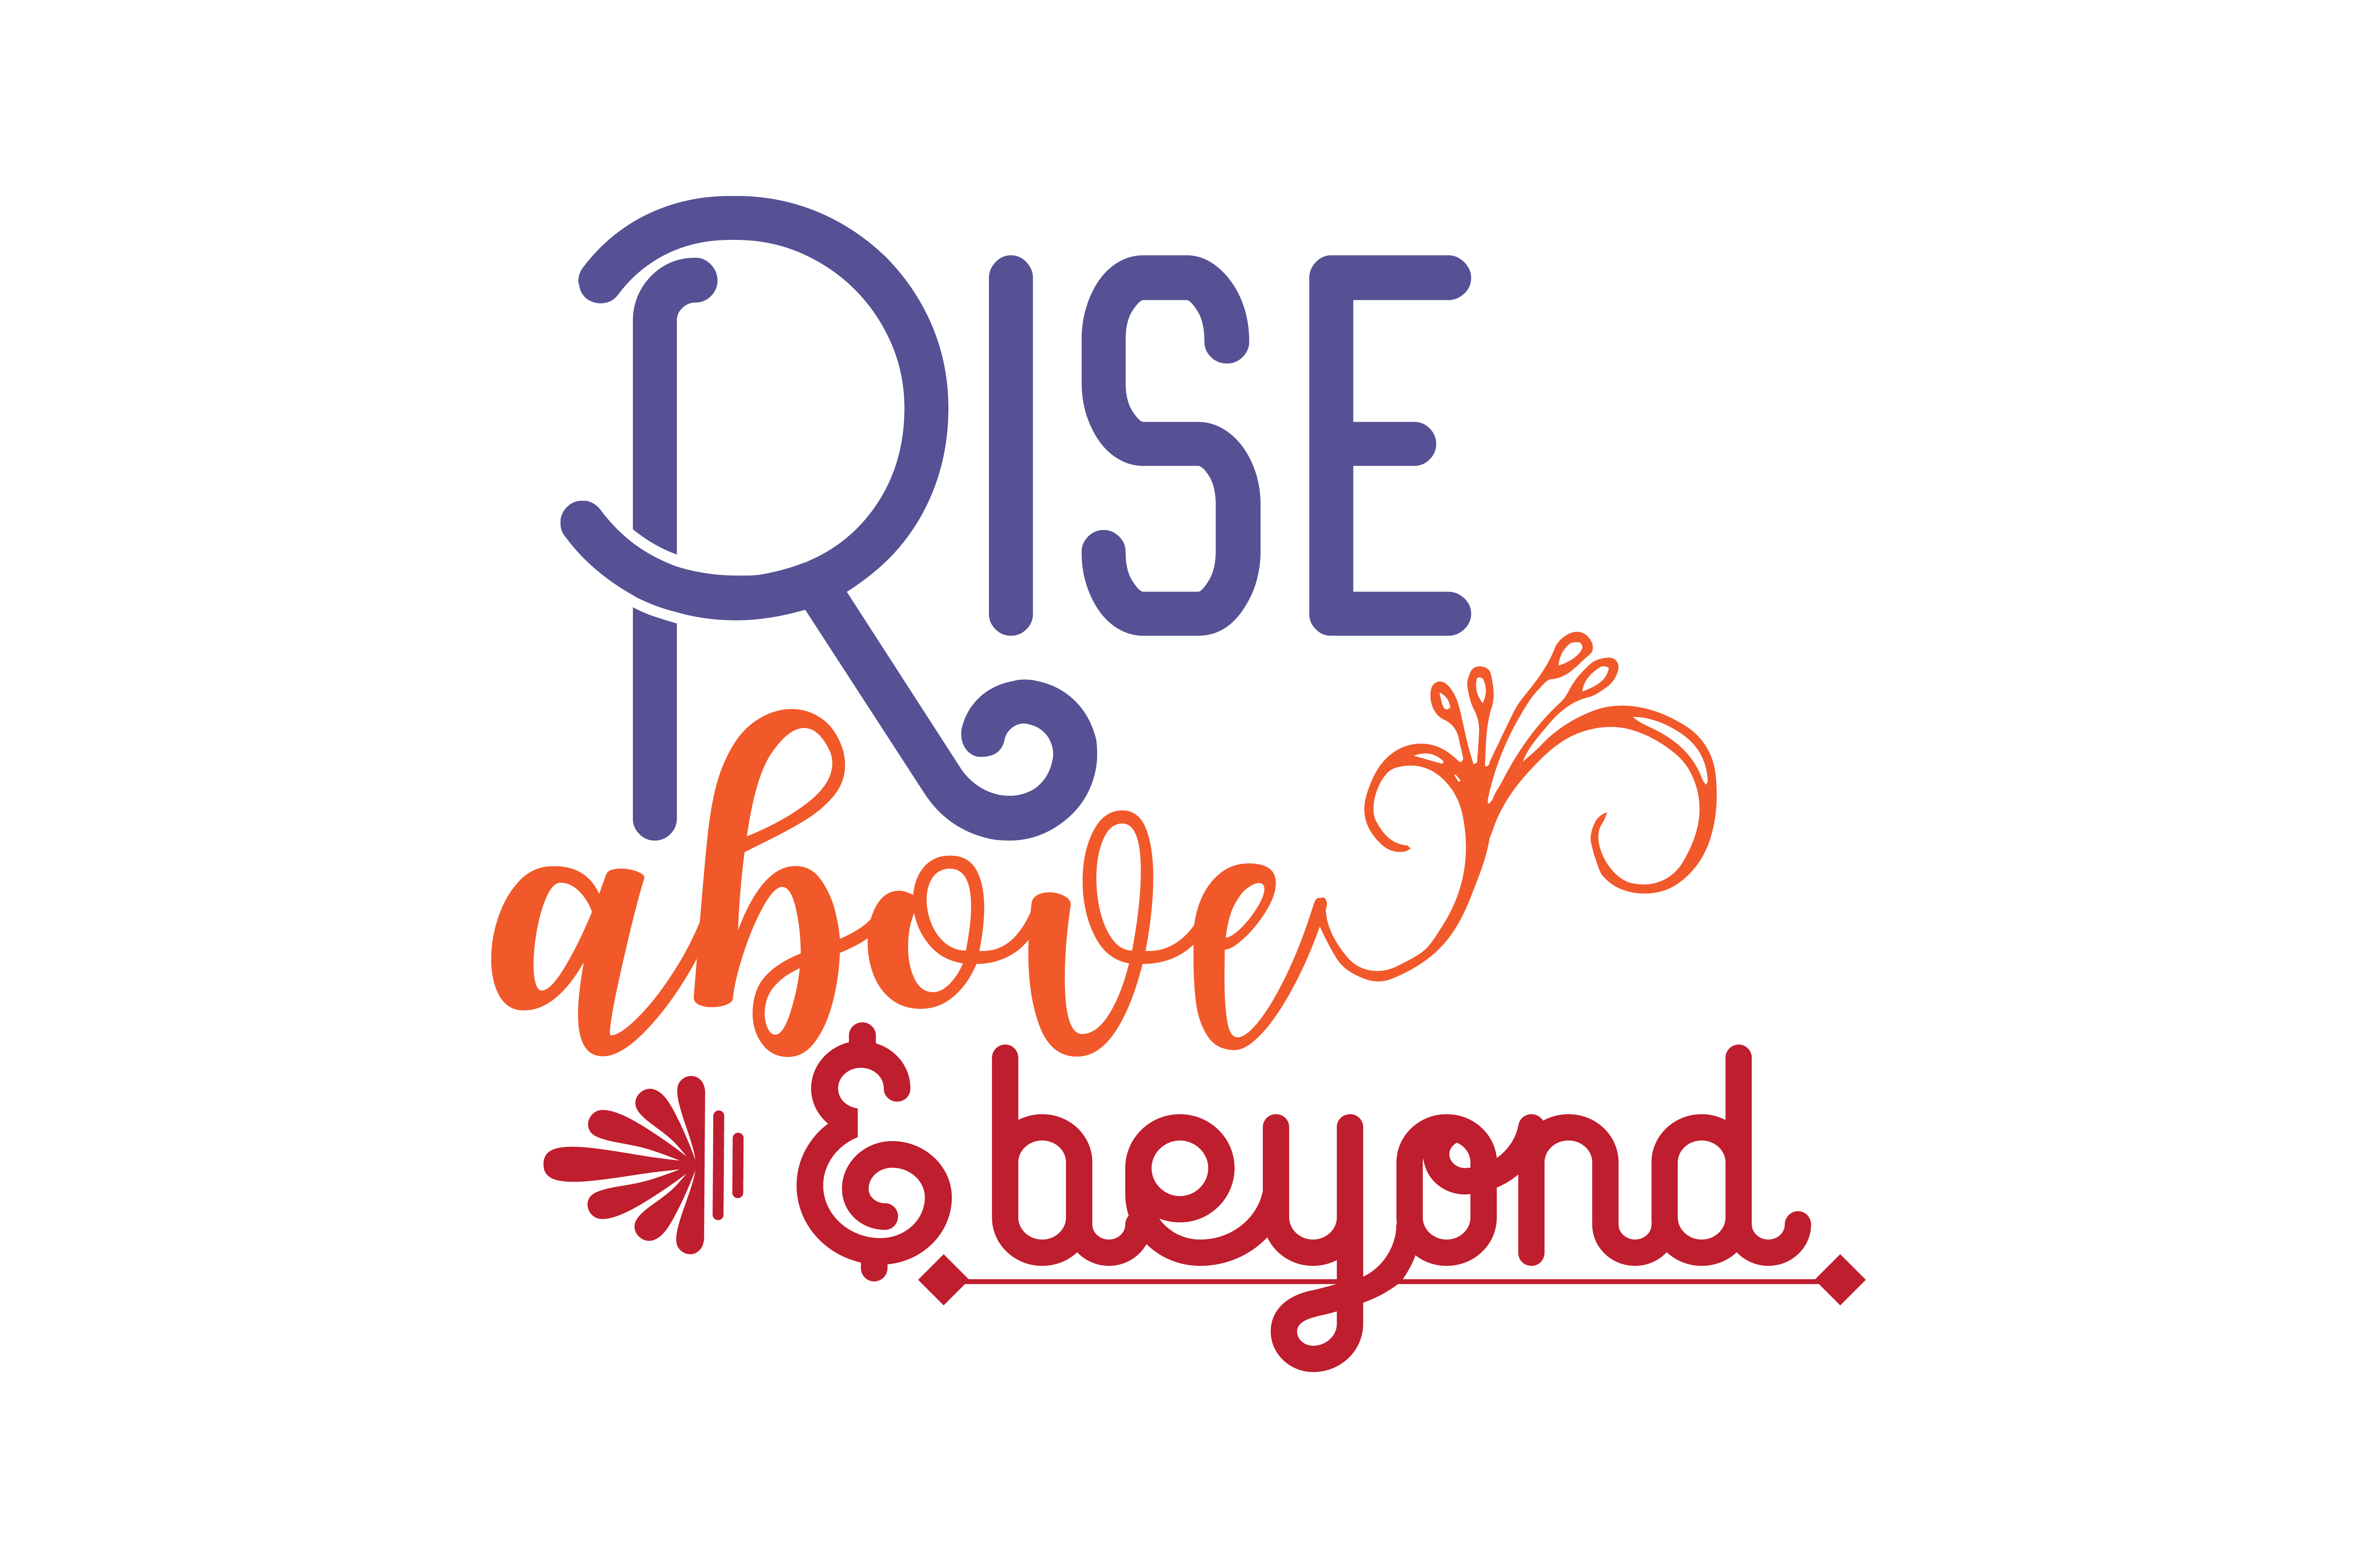 Download Free Rise Above Beyond Quote Svg Cut Graphic By Thelucky Creative for Cricut Explore, Silhouette and other cutting machines.